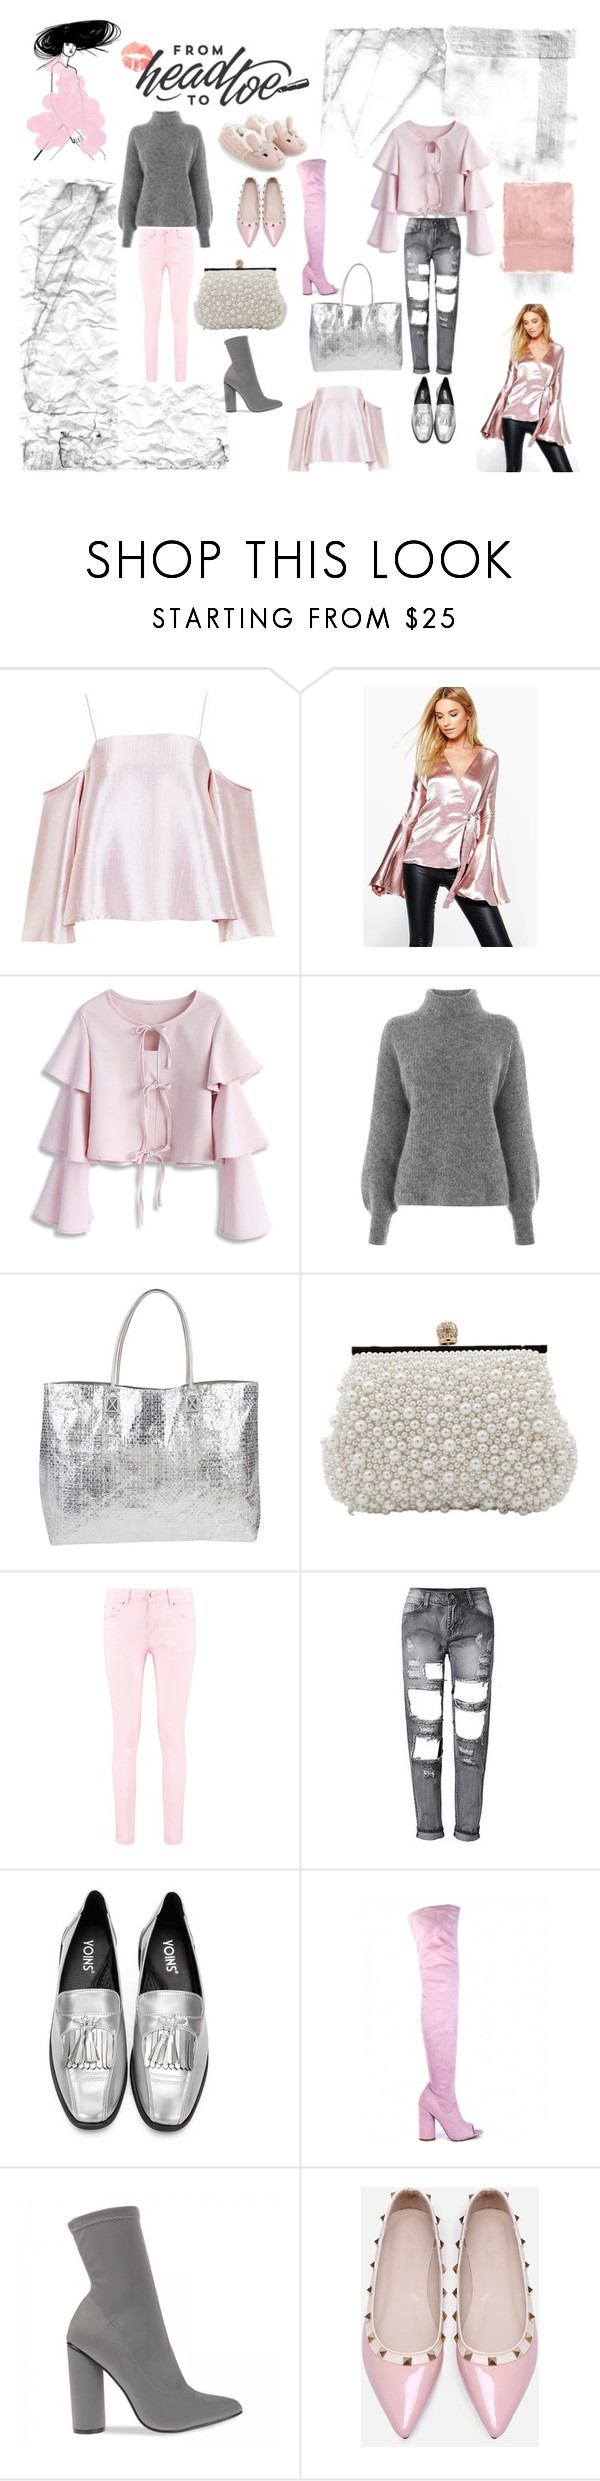 """""""Head to toe"""" by julianaardenius on Polyvore featuring Topshop, Boohoo, Chicwish, Warehouse, Armitage Avenue, WithChic, Accessorize and Rothko"""